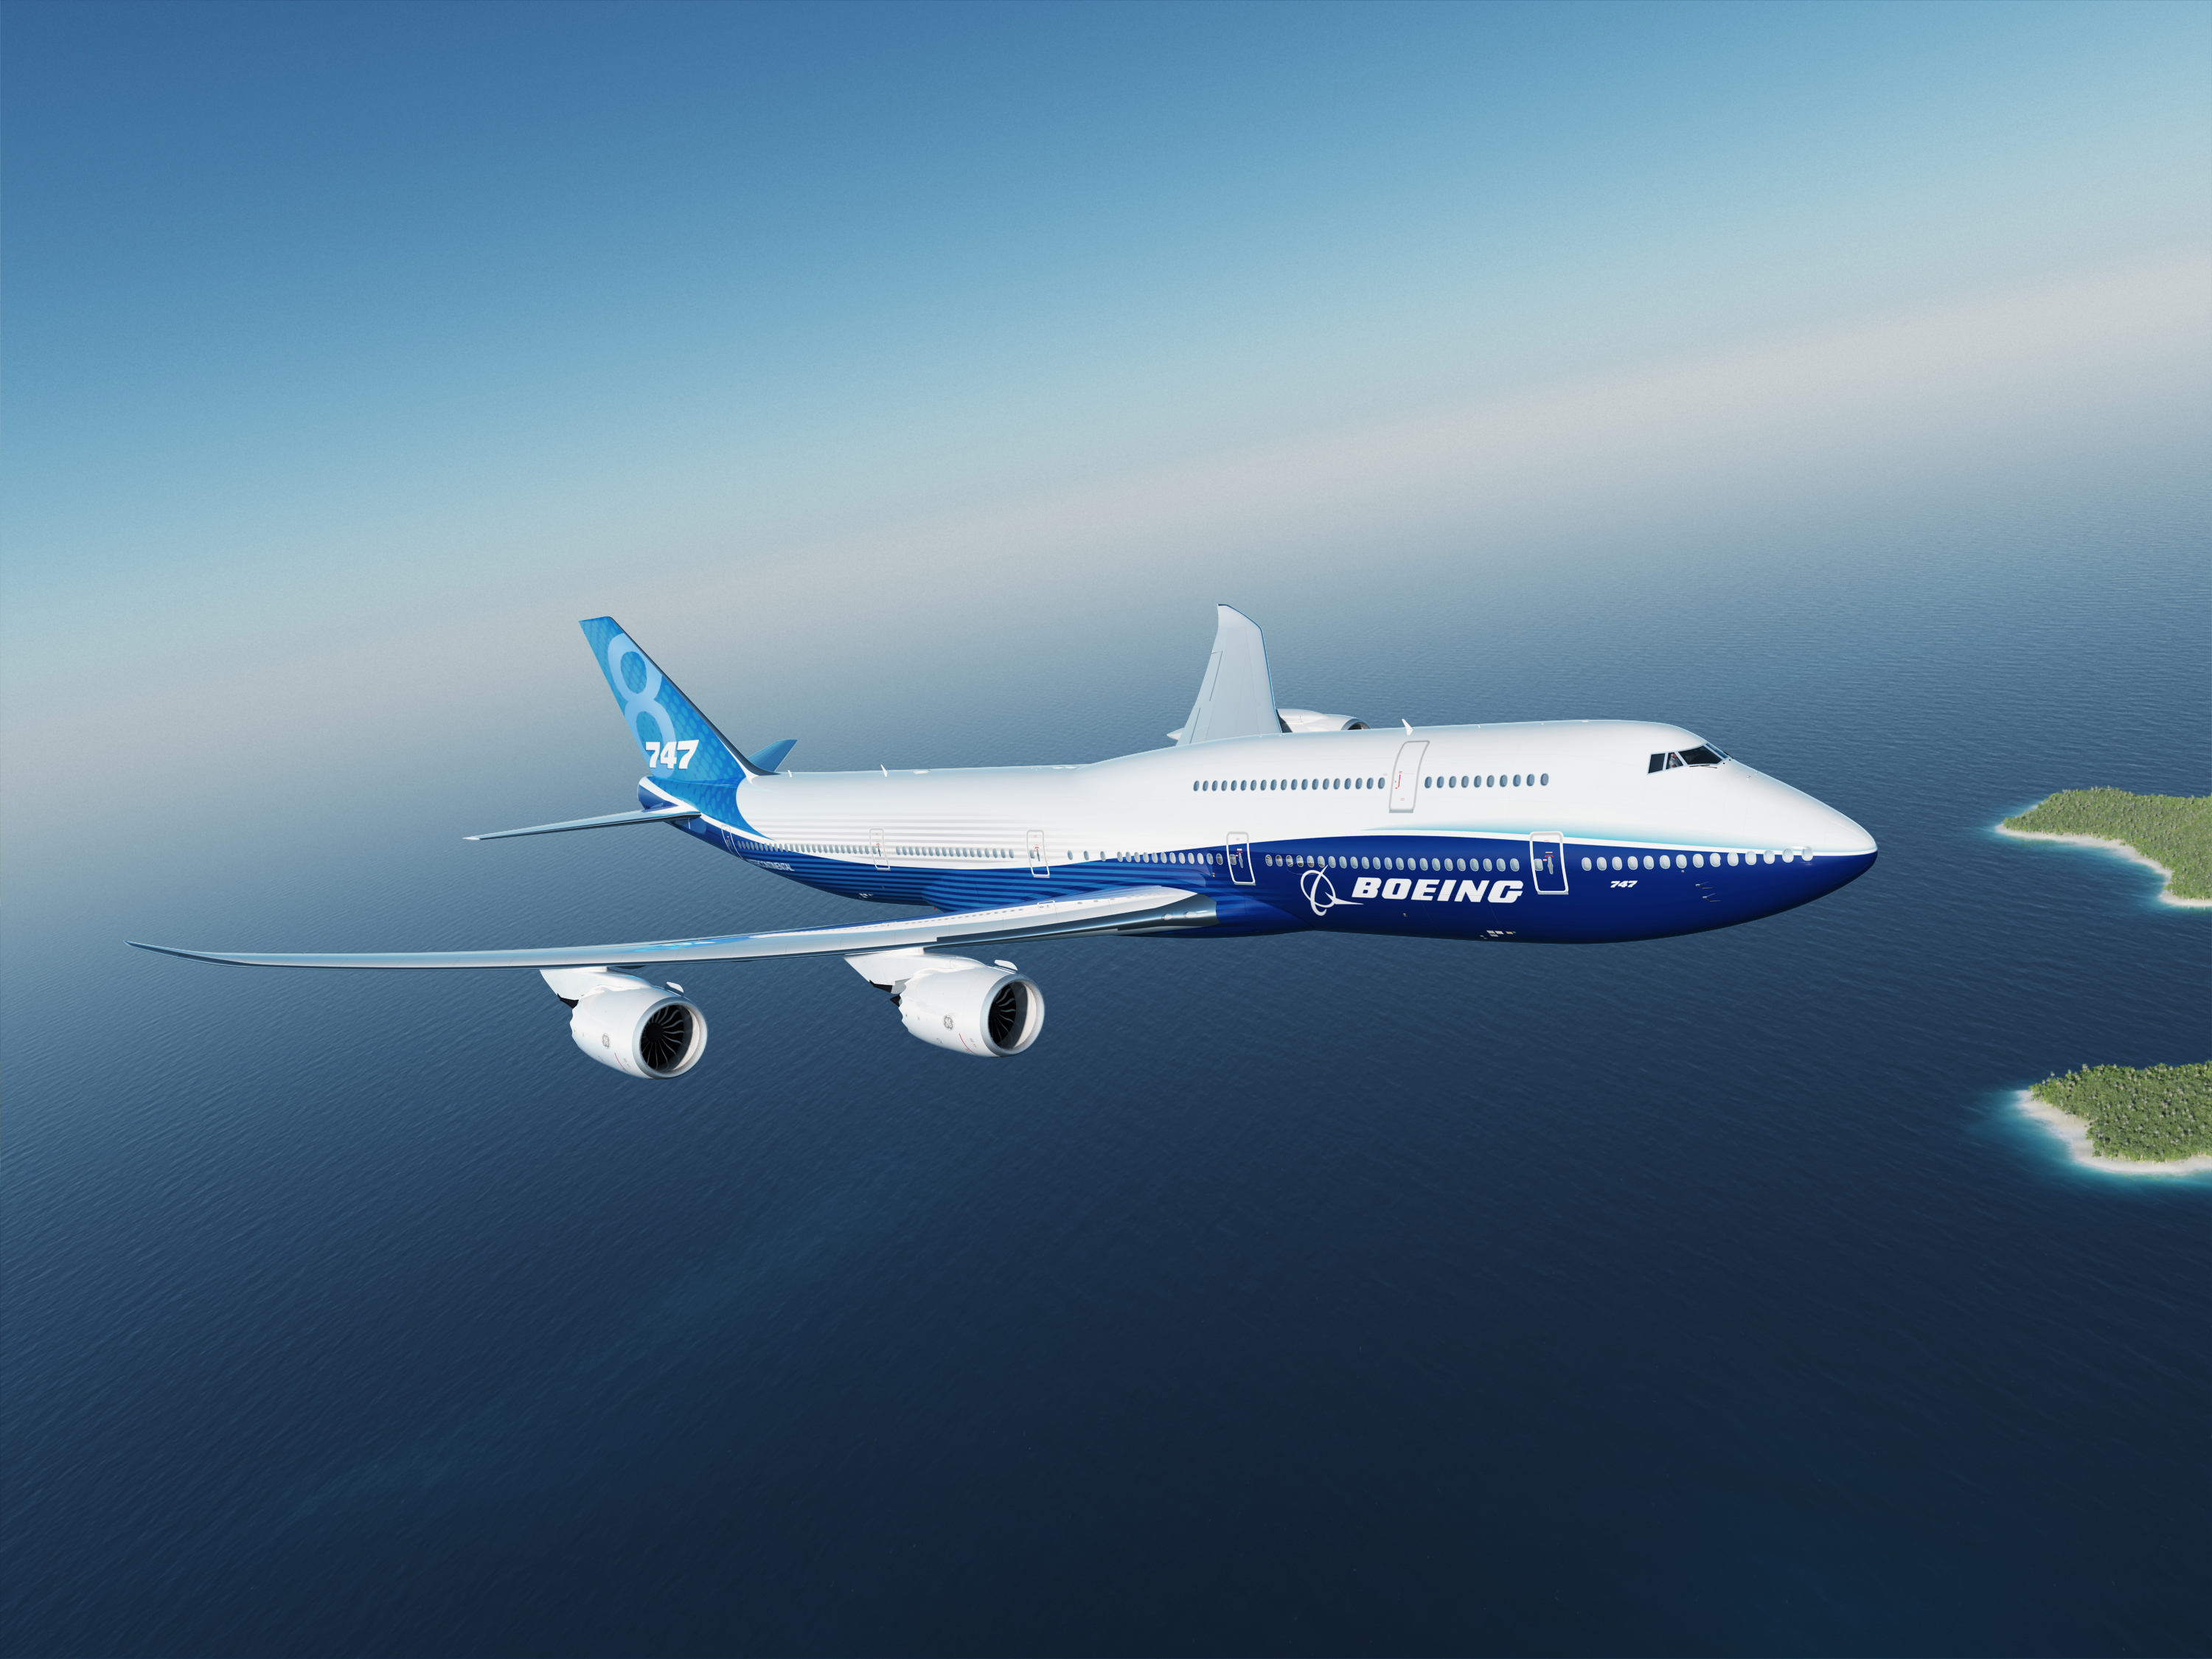 K66740; 747-8I; Boeing Blue Livery; Air to Air; Over Tropical Water; Island below